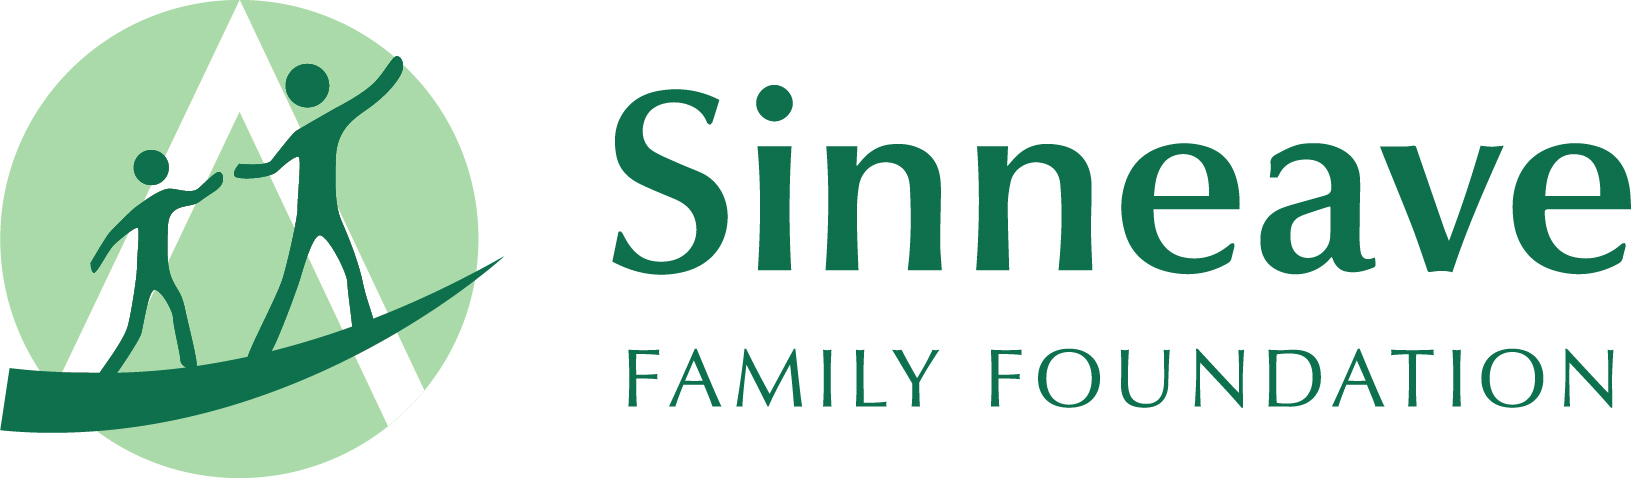 SINNEAVE_logo_final.jpg